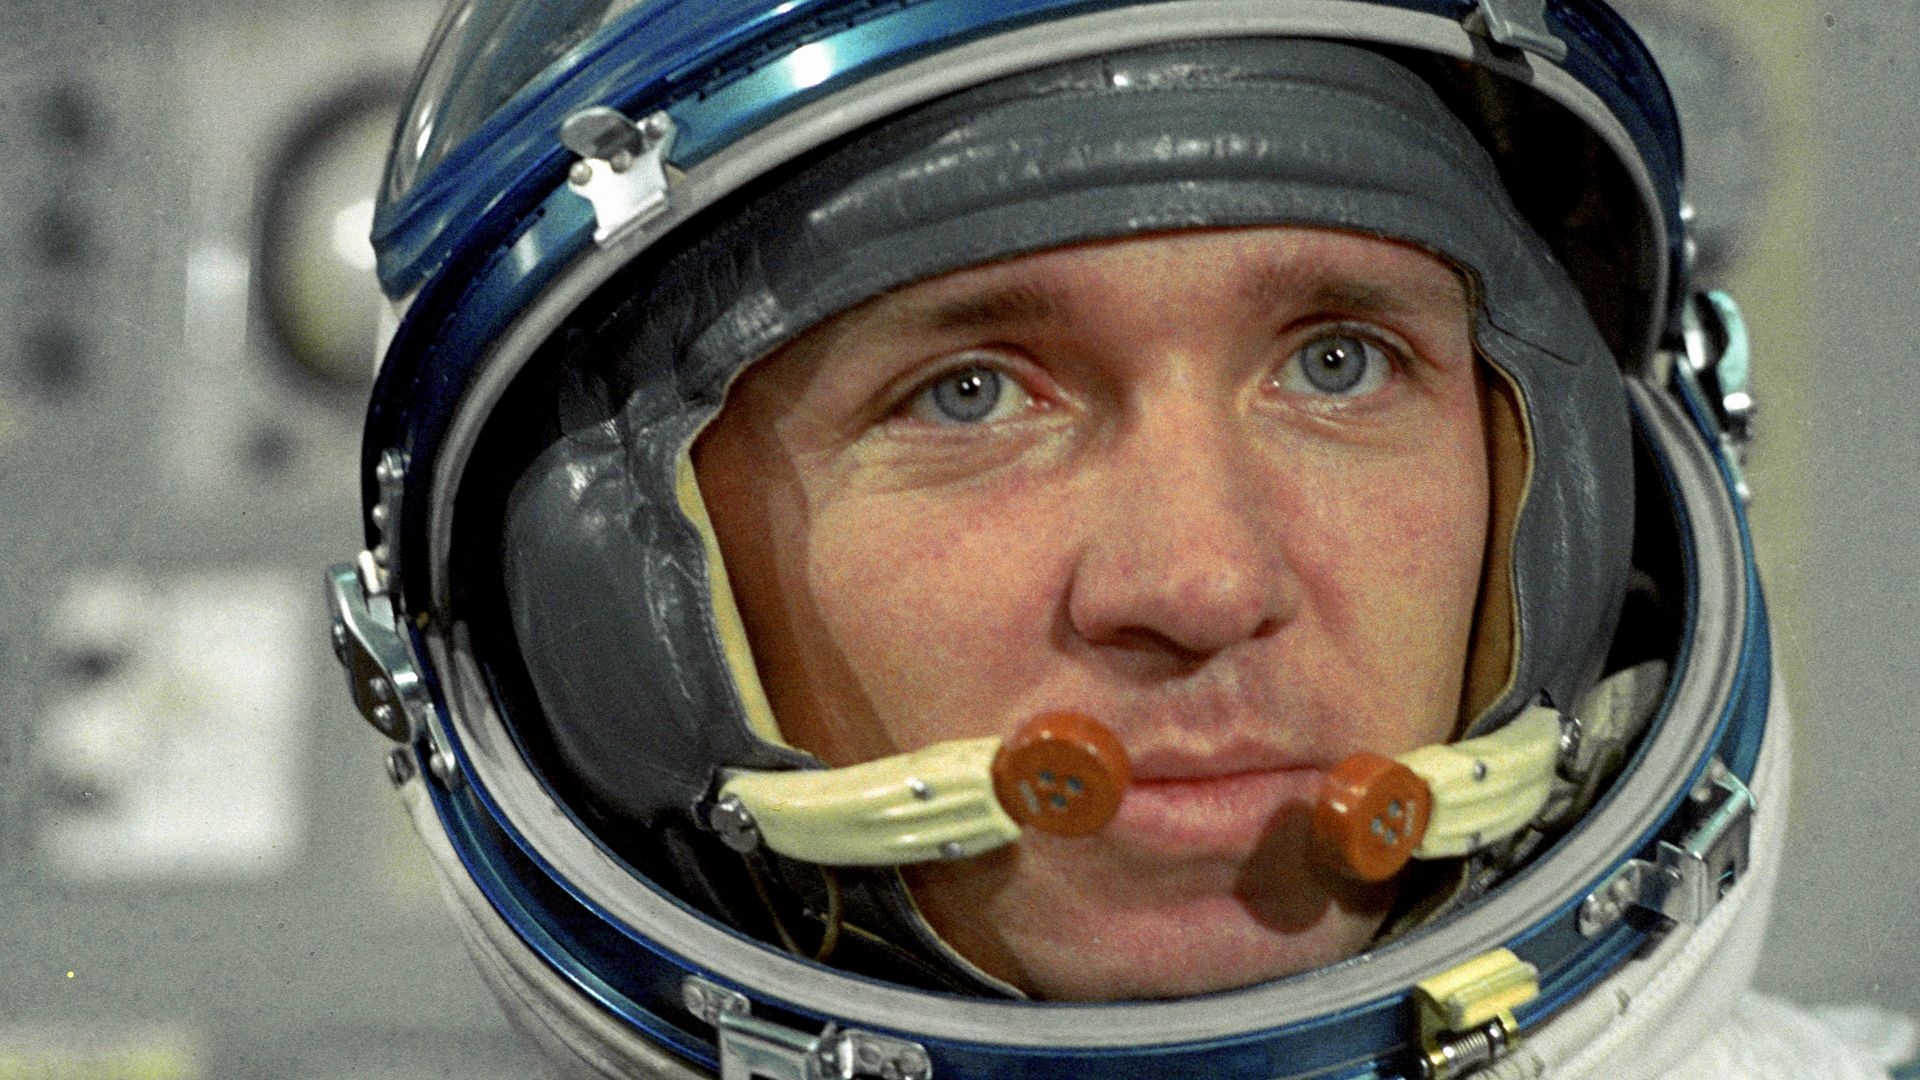 The cosmonaut Valentin Lebedev in 1982 (Credit: Alamy)